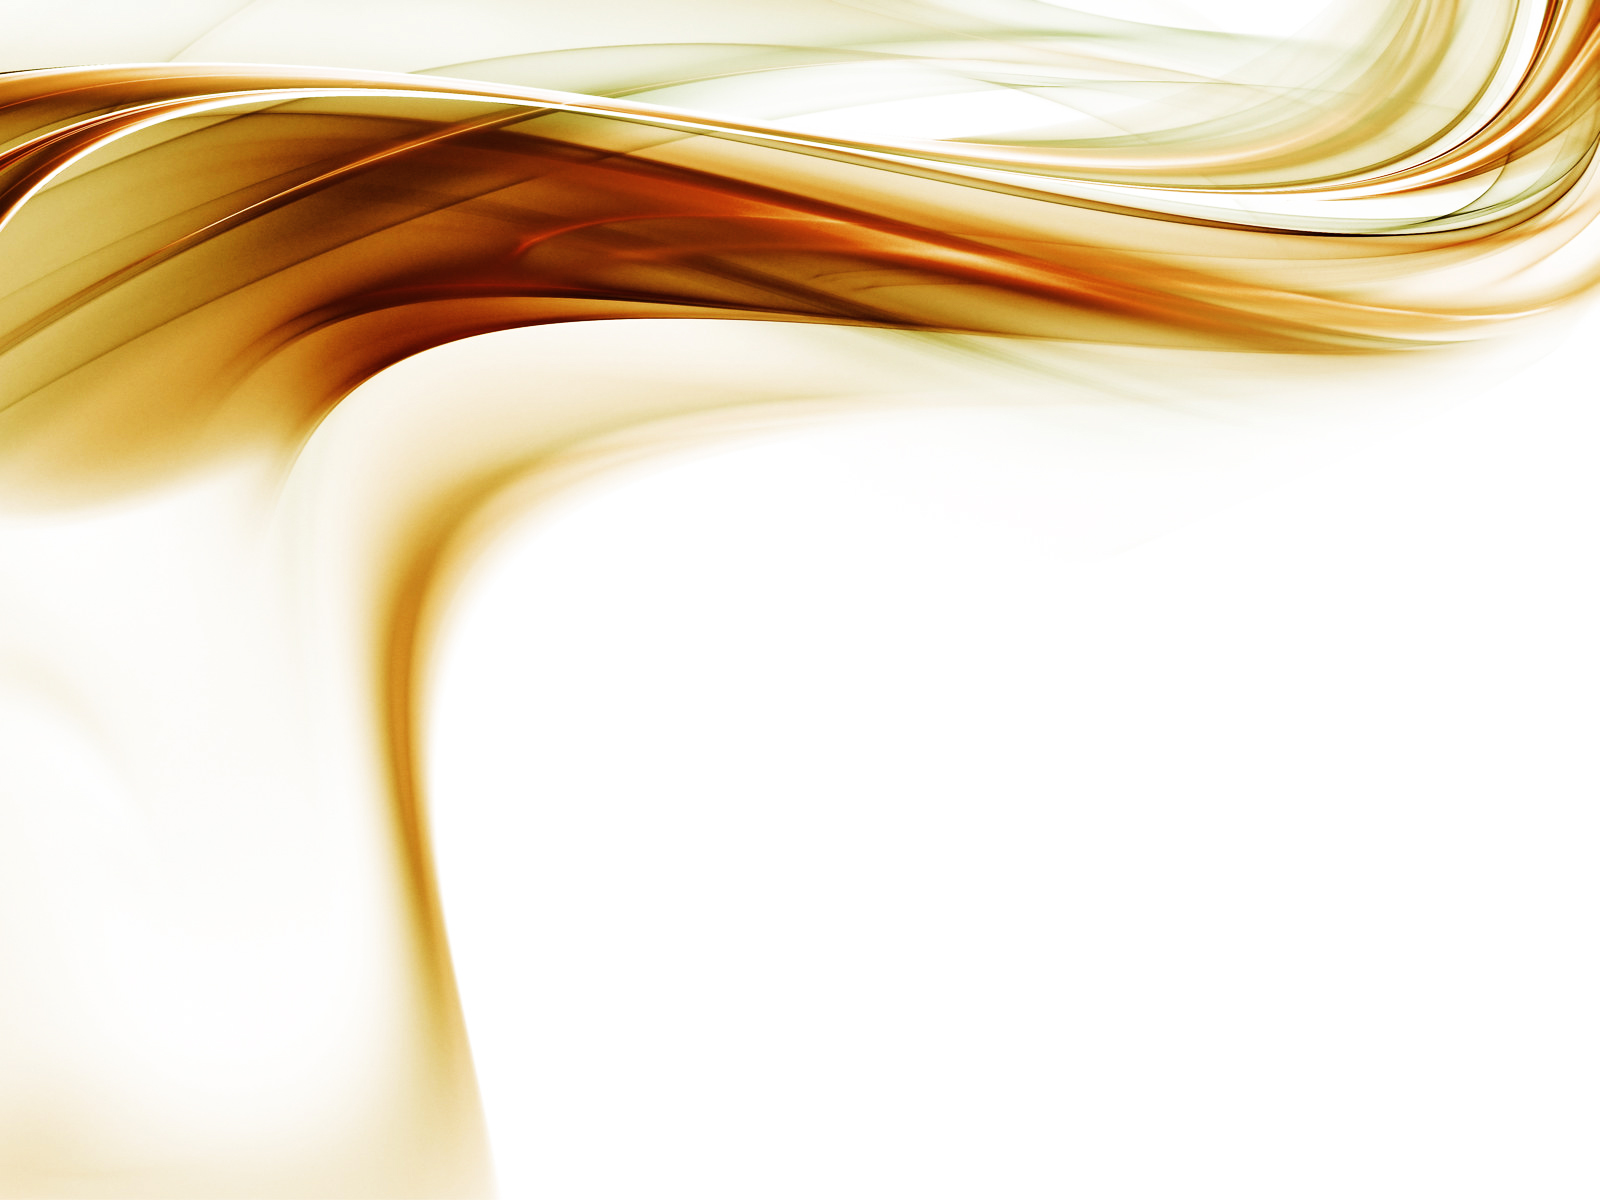 Abstract gold ppt backgrounds template ppt backgrounds templates software powerpoint 2003 2007 2010 2013 page size 1024px x 768px free license feel free to download and use this item for both personal and etc toneelgroepblik